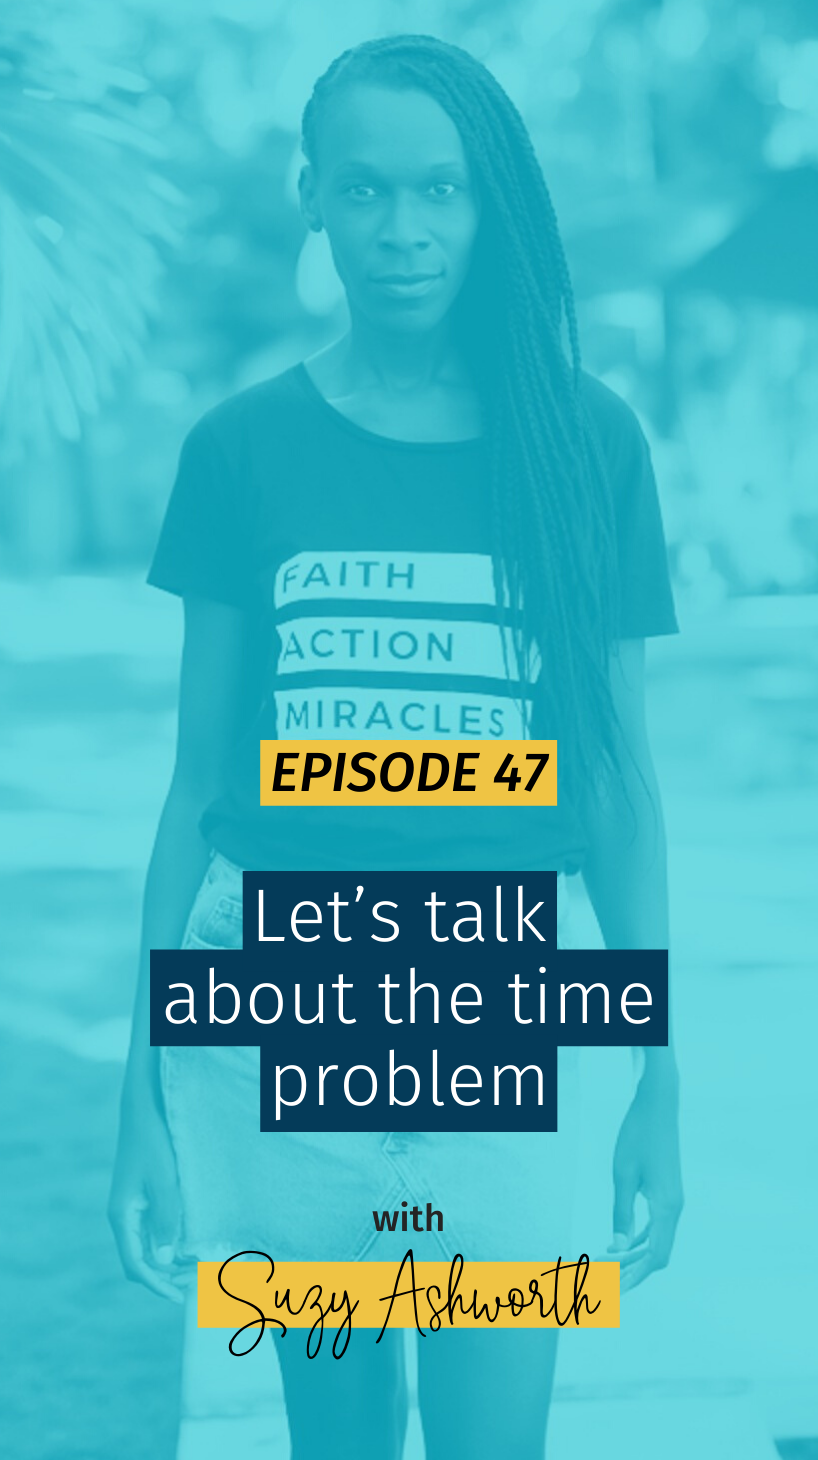 047 Let's talk about the time problem